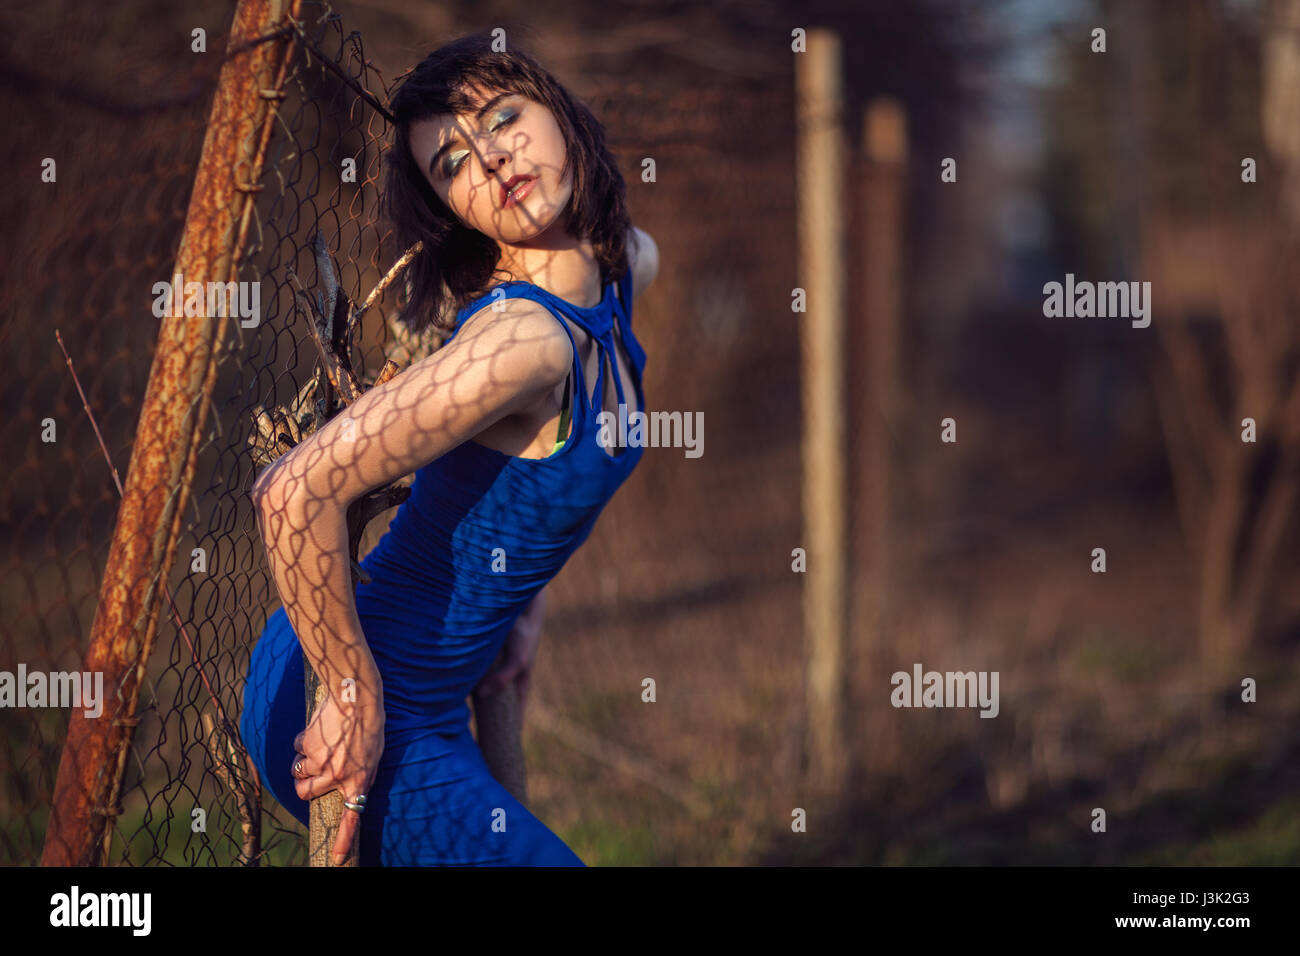 Beautiful girl in evening dress blue backs pressed against the fence. - Stock Image